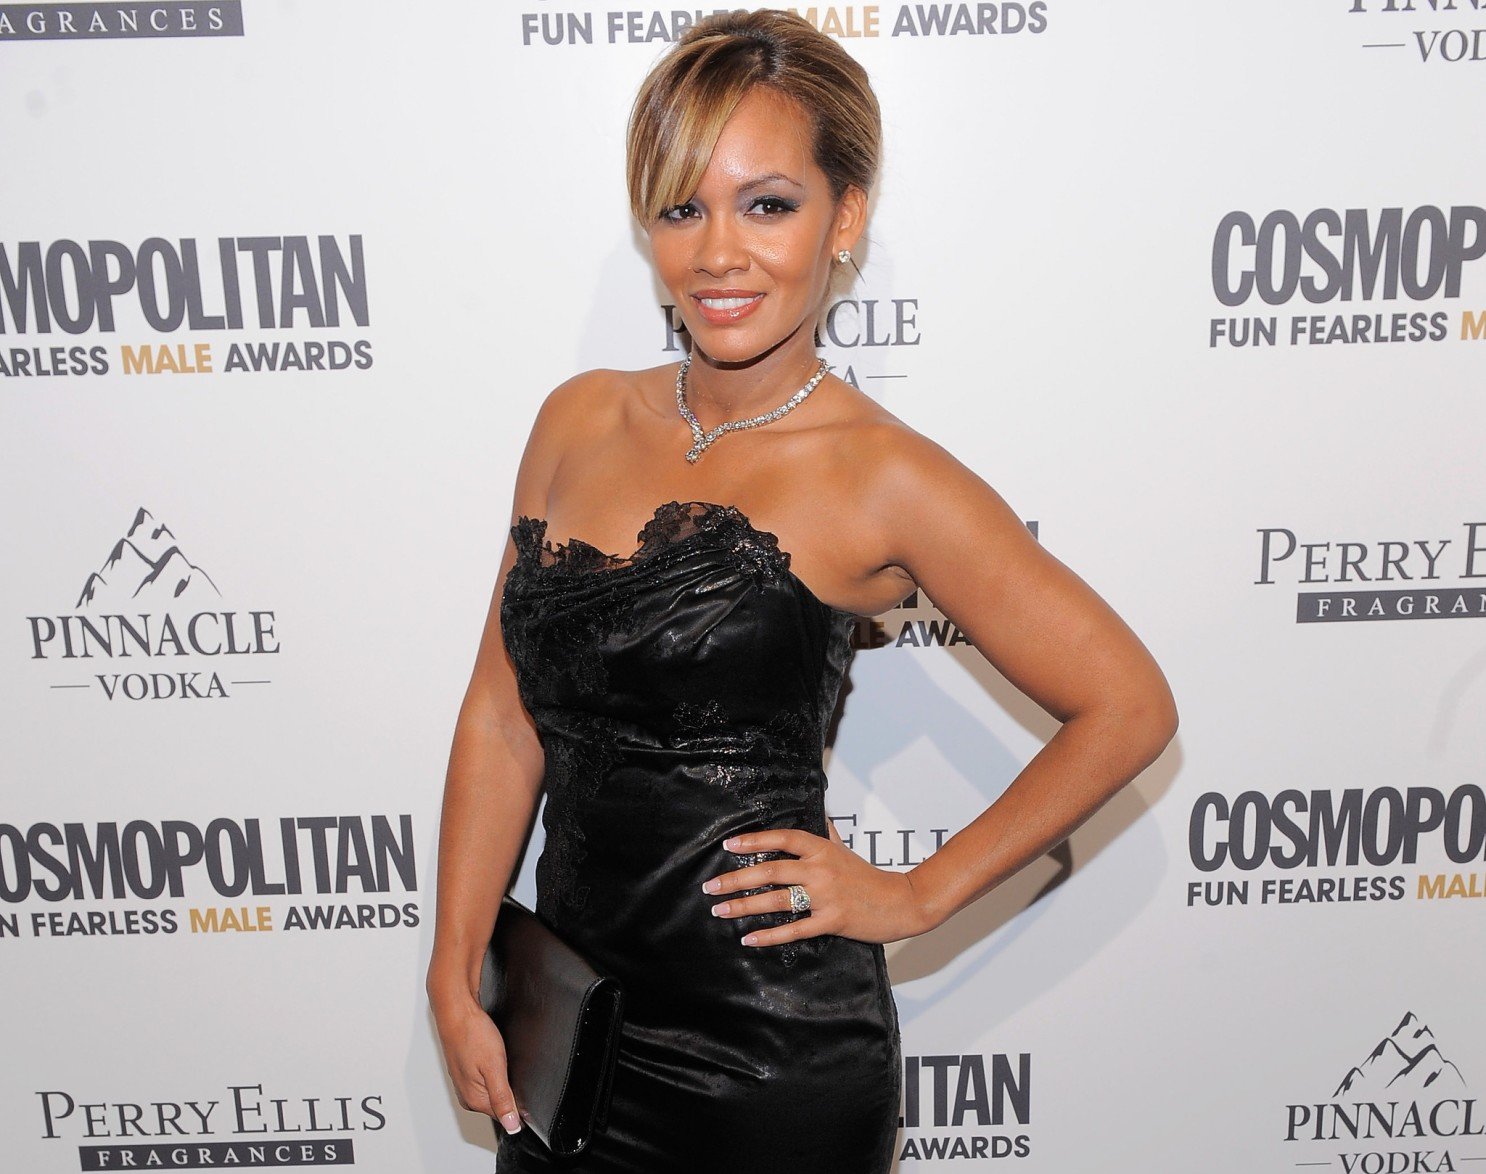 evelyn-lozada-just-confirmed-that-she-is-not-coming-back-for-the-series-basketball-wives